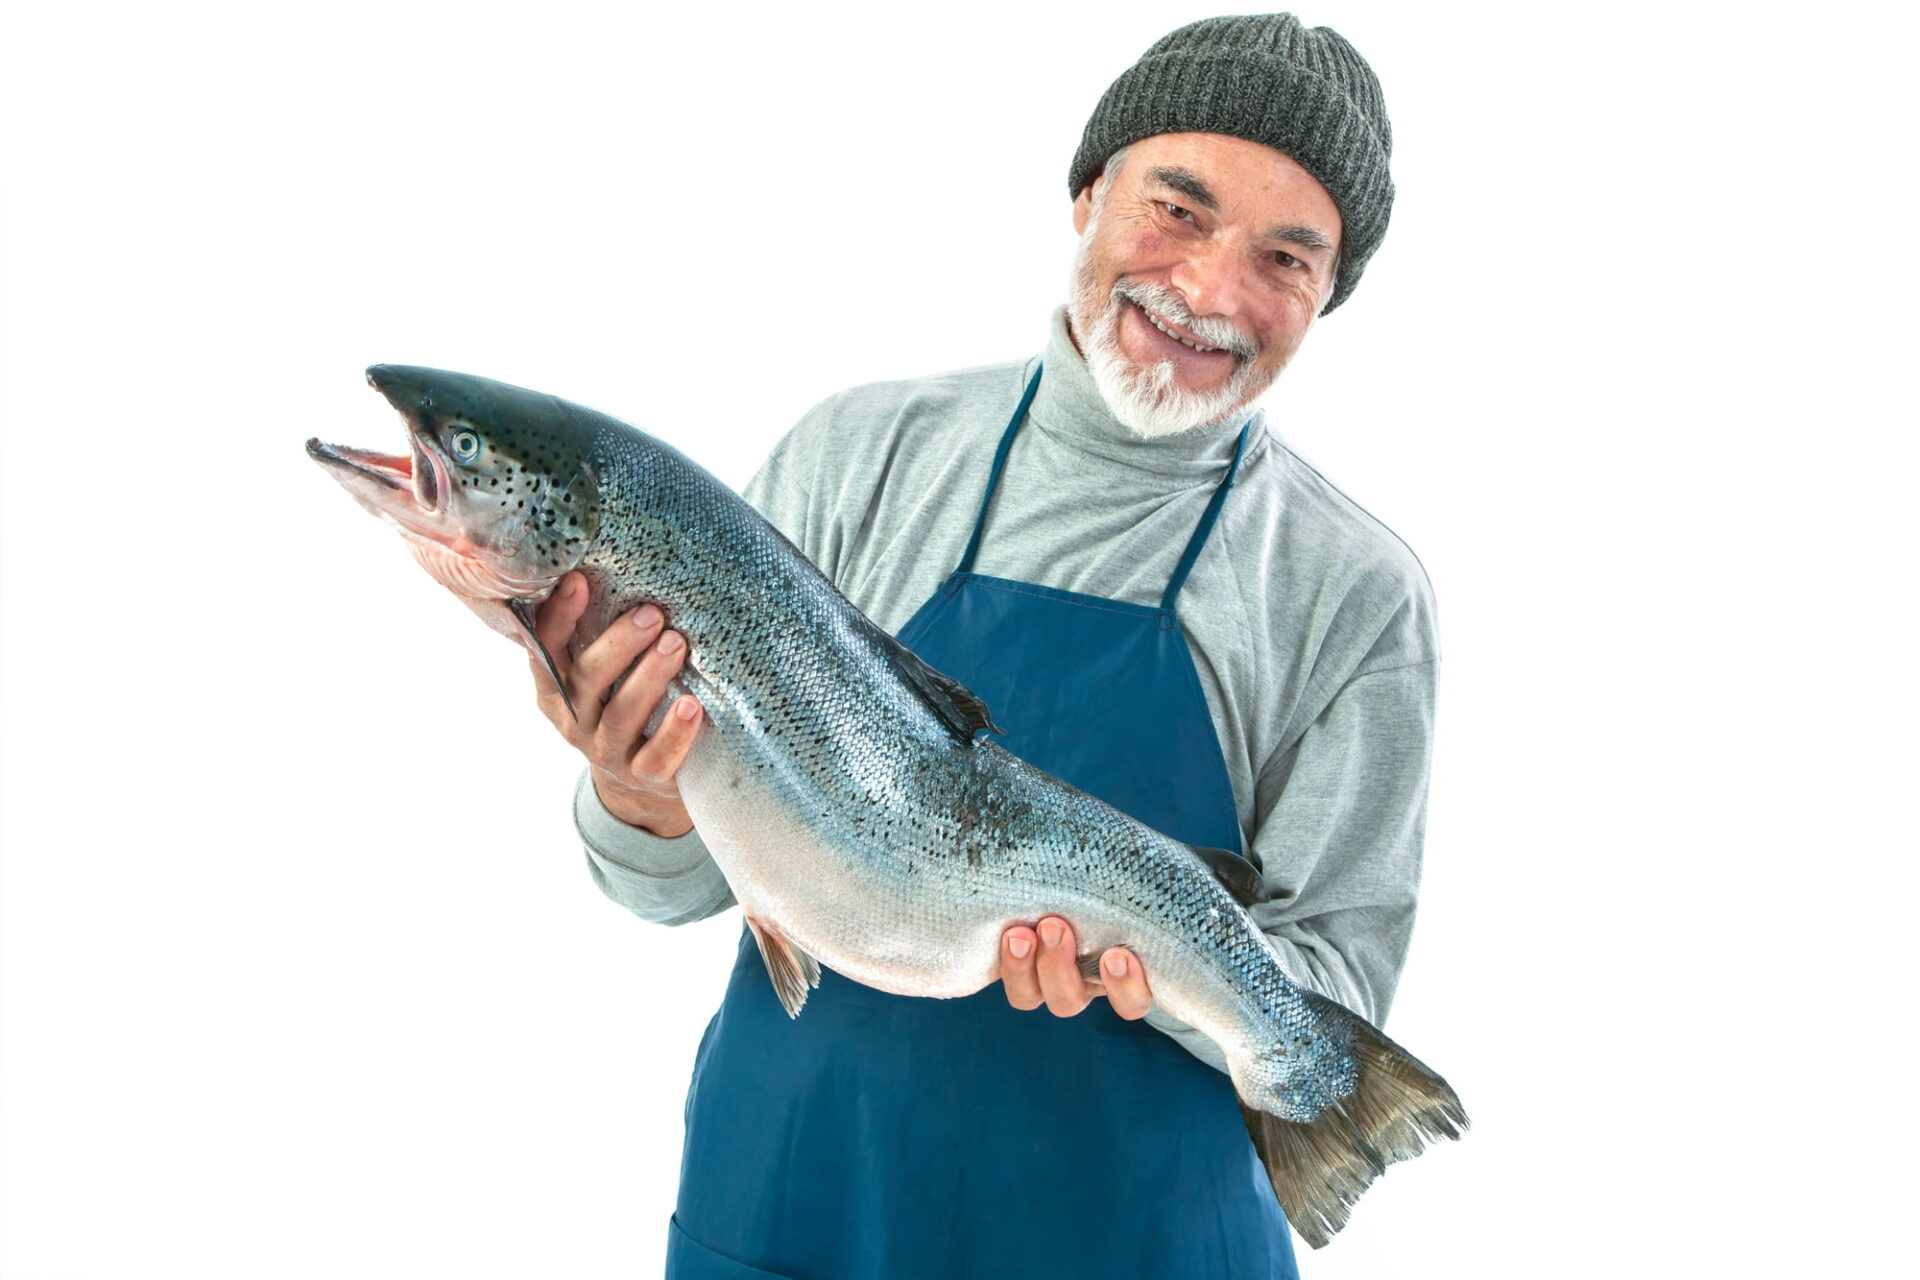 Fisher holding a big atlantic salmon fish isolated on white background